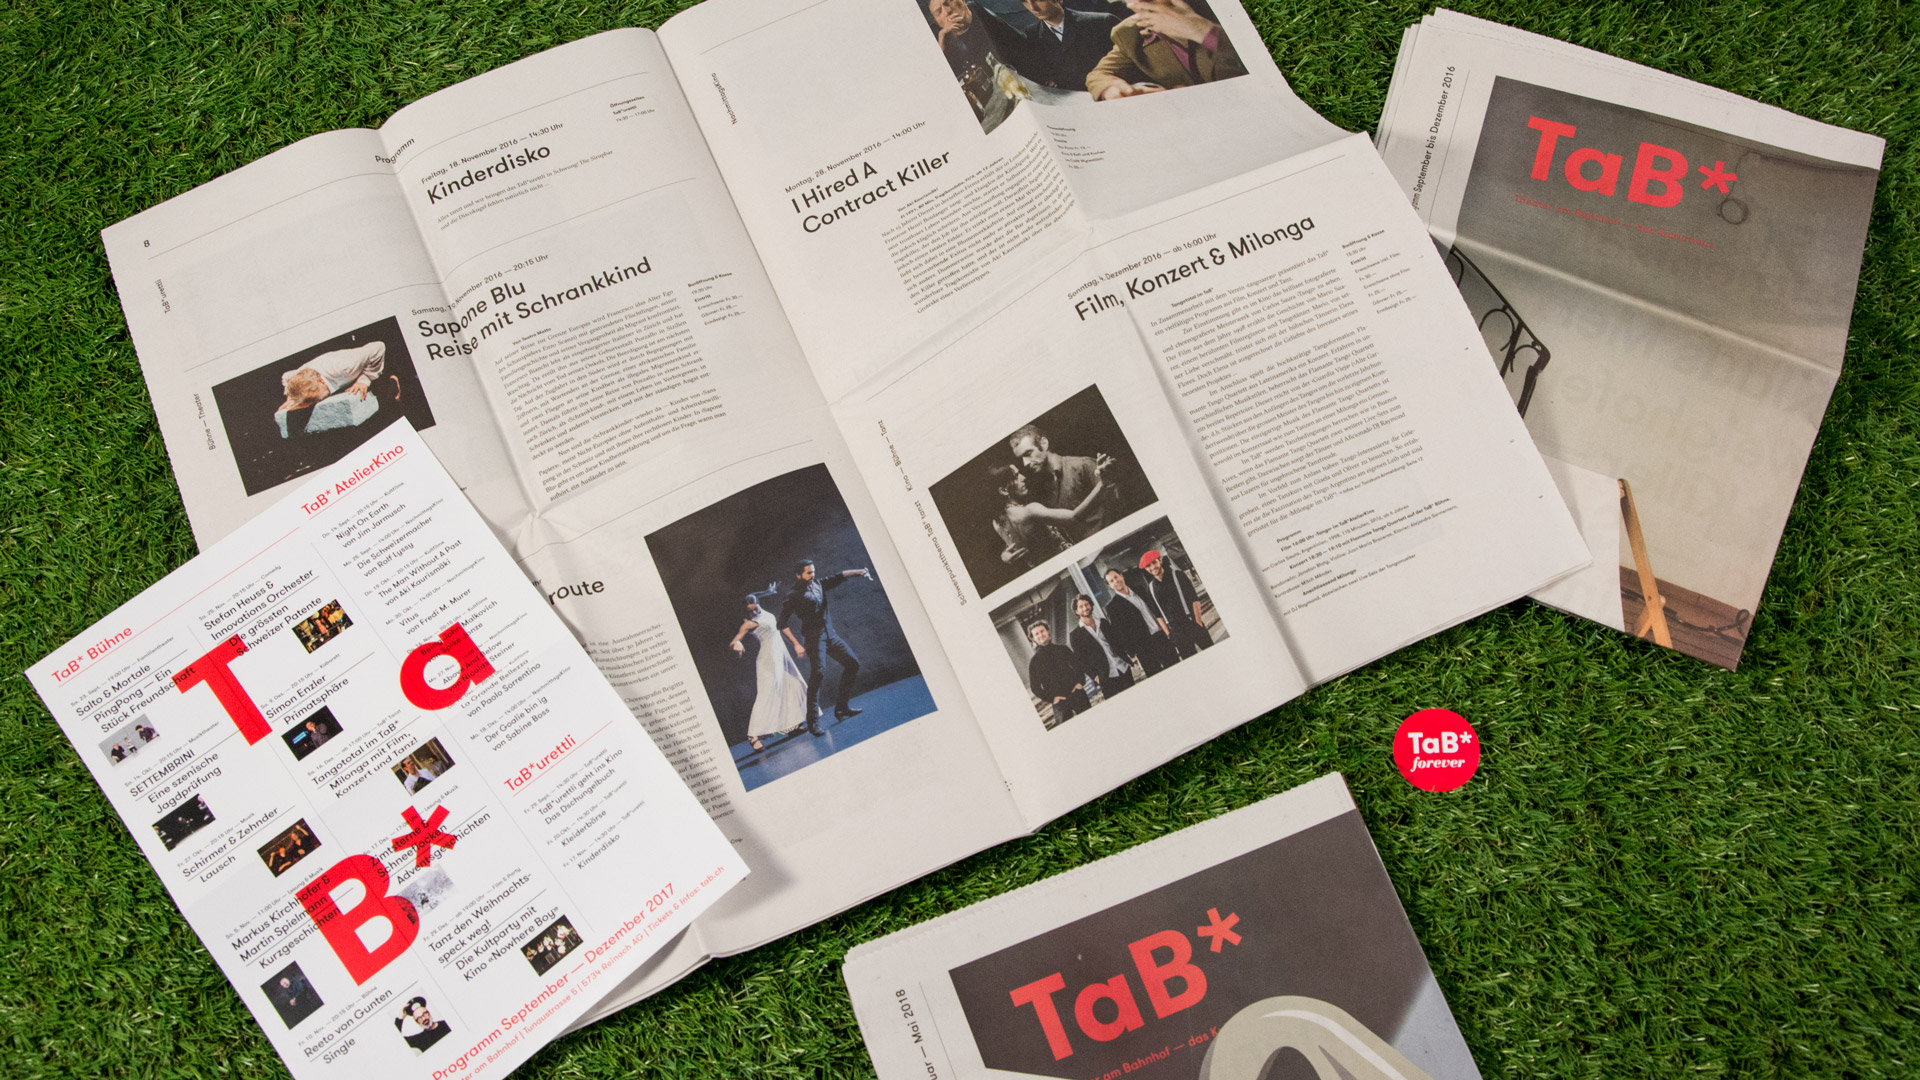 l'équipe [visuelle] – TaB* Theater am Bahnhof – Programmzeitung, Corporate Design, Plakate, Flyer, Kultur